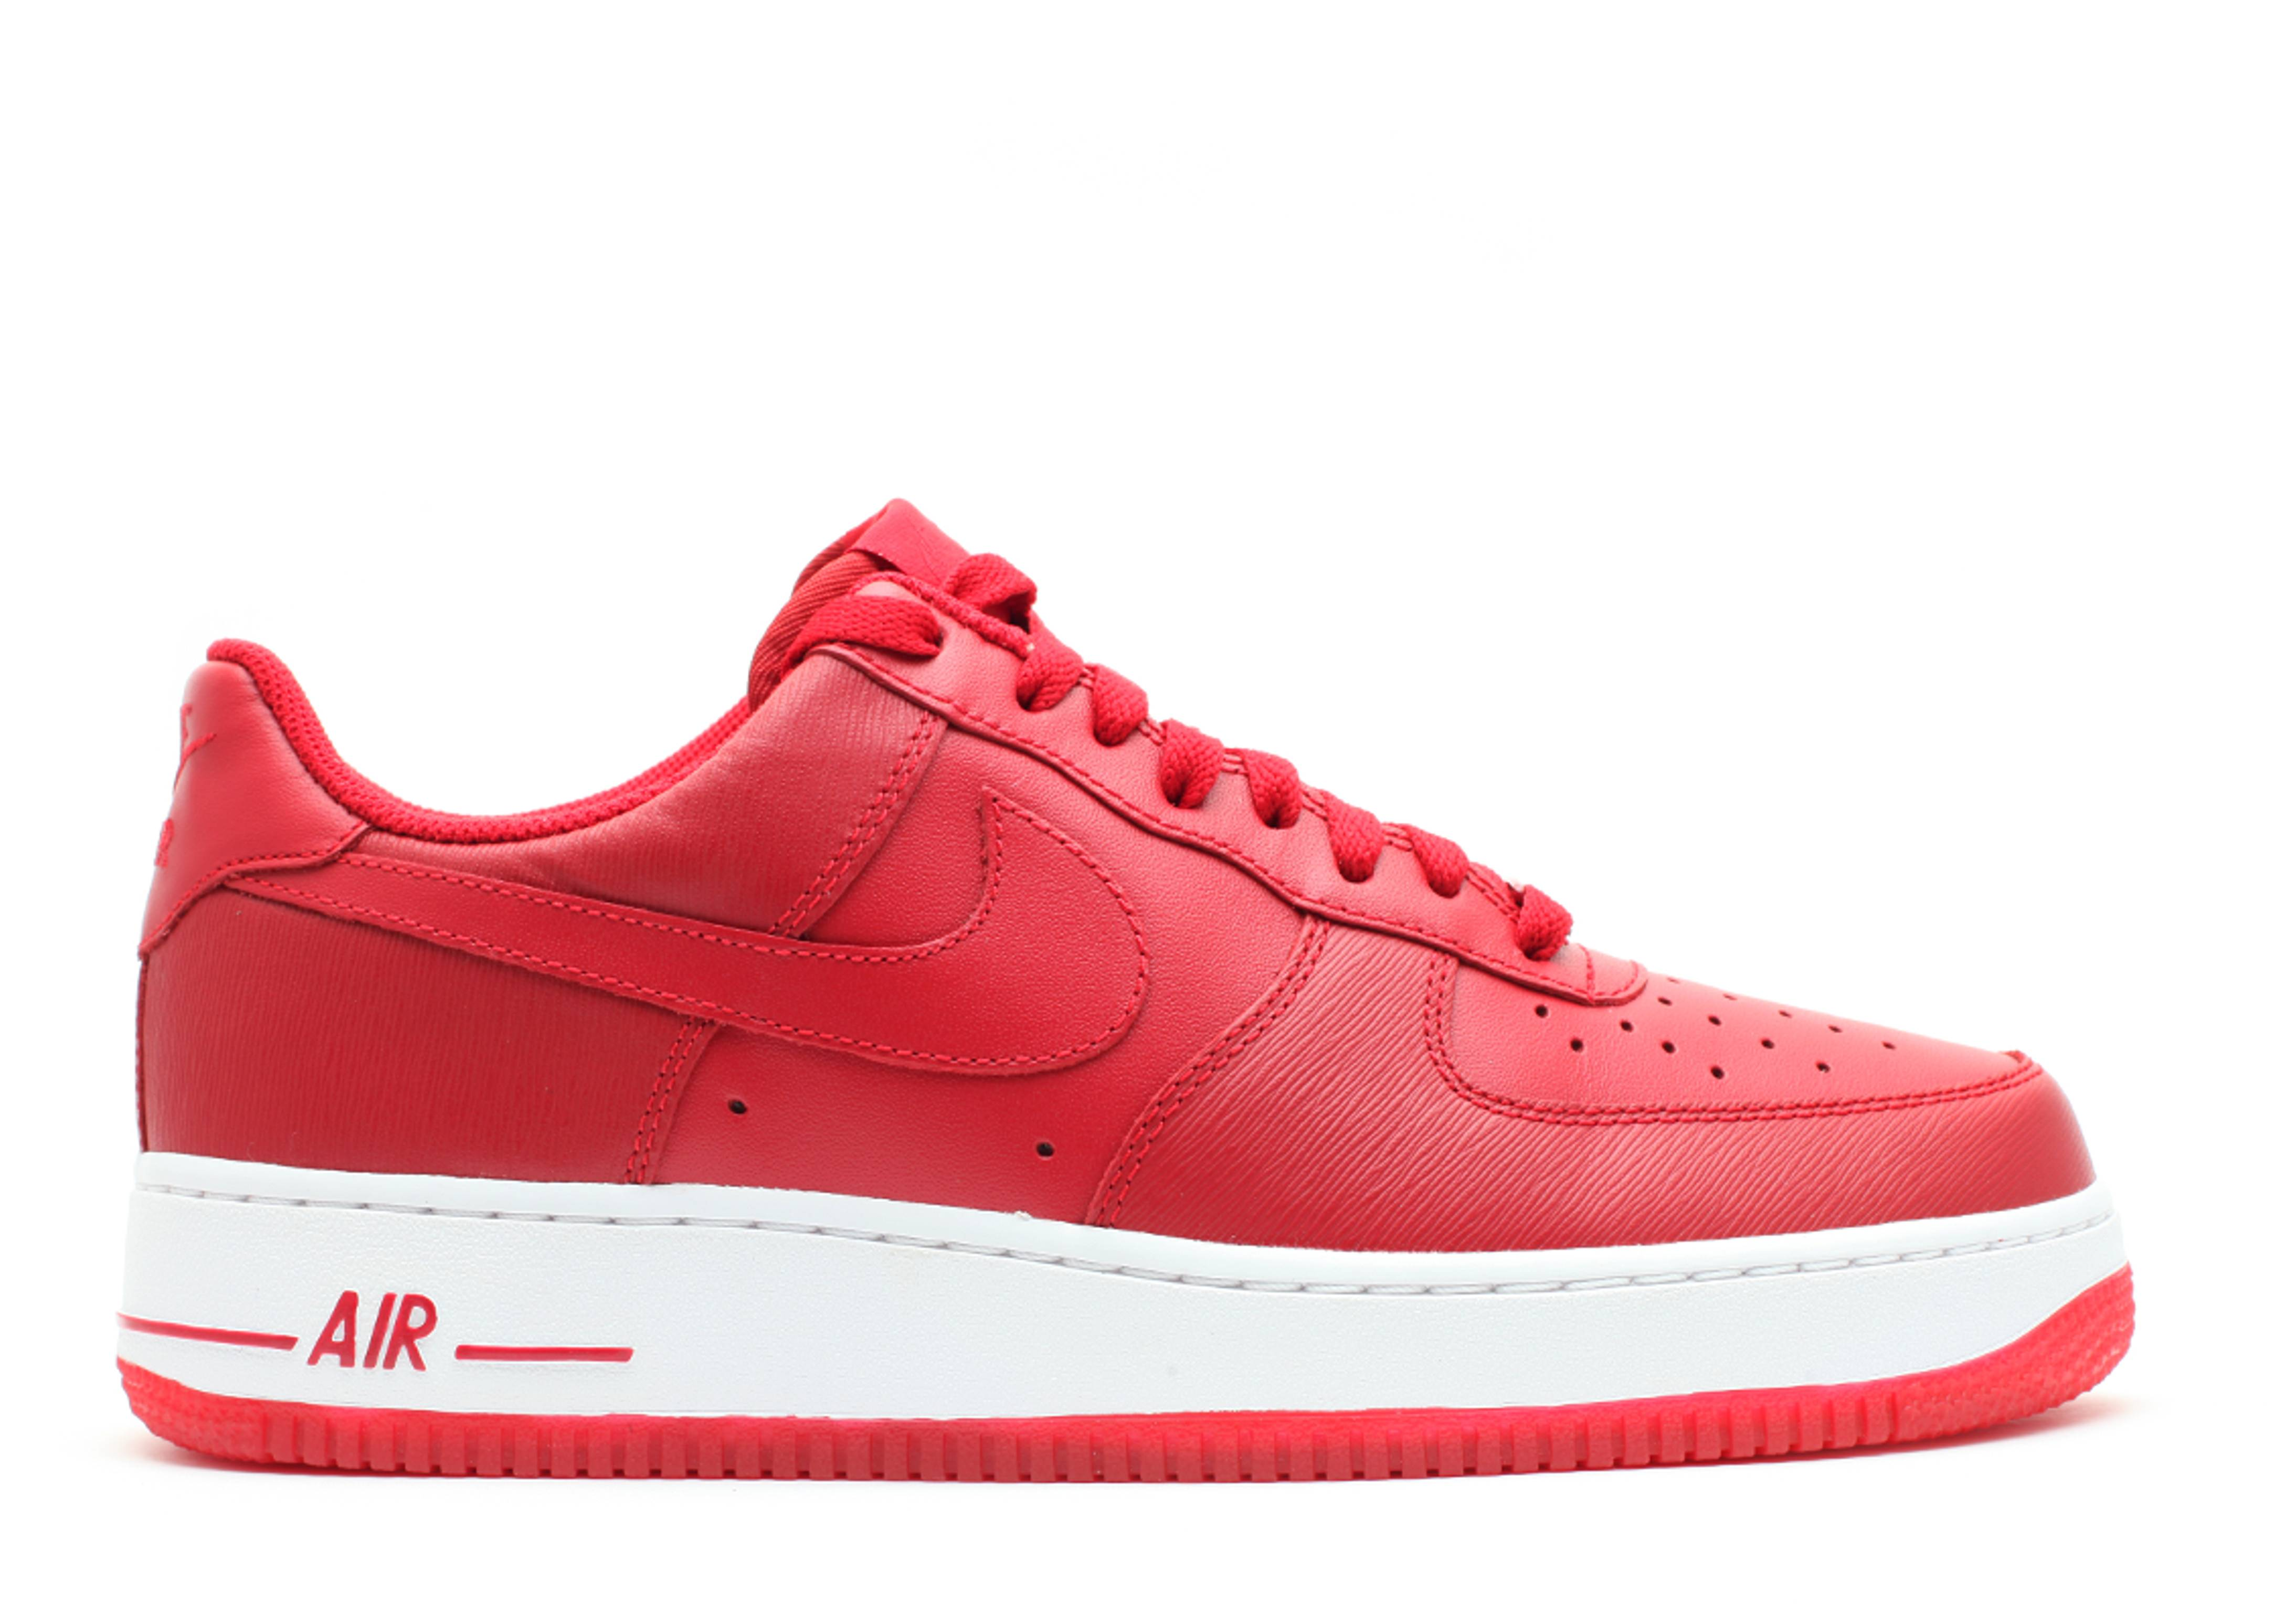 Nike Air Force 1 Low Sheed Varsity Red for men